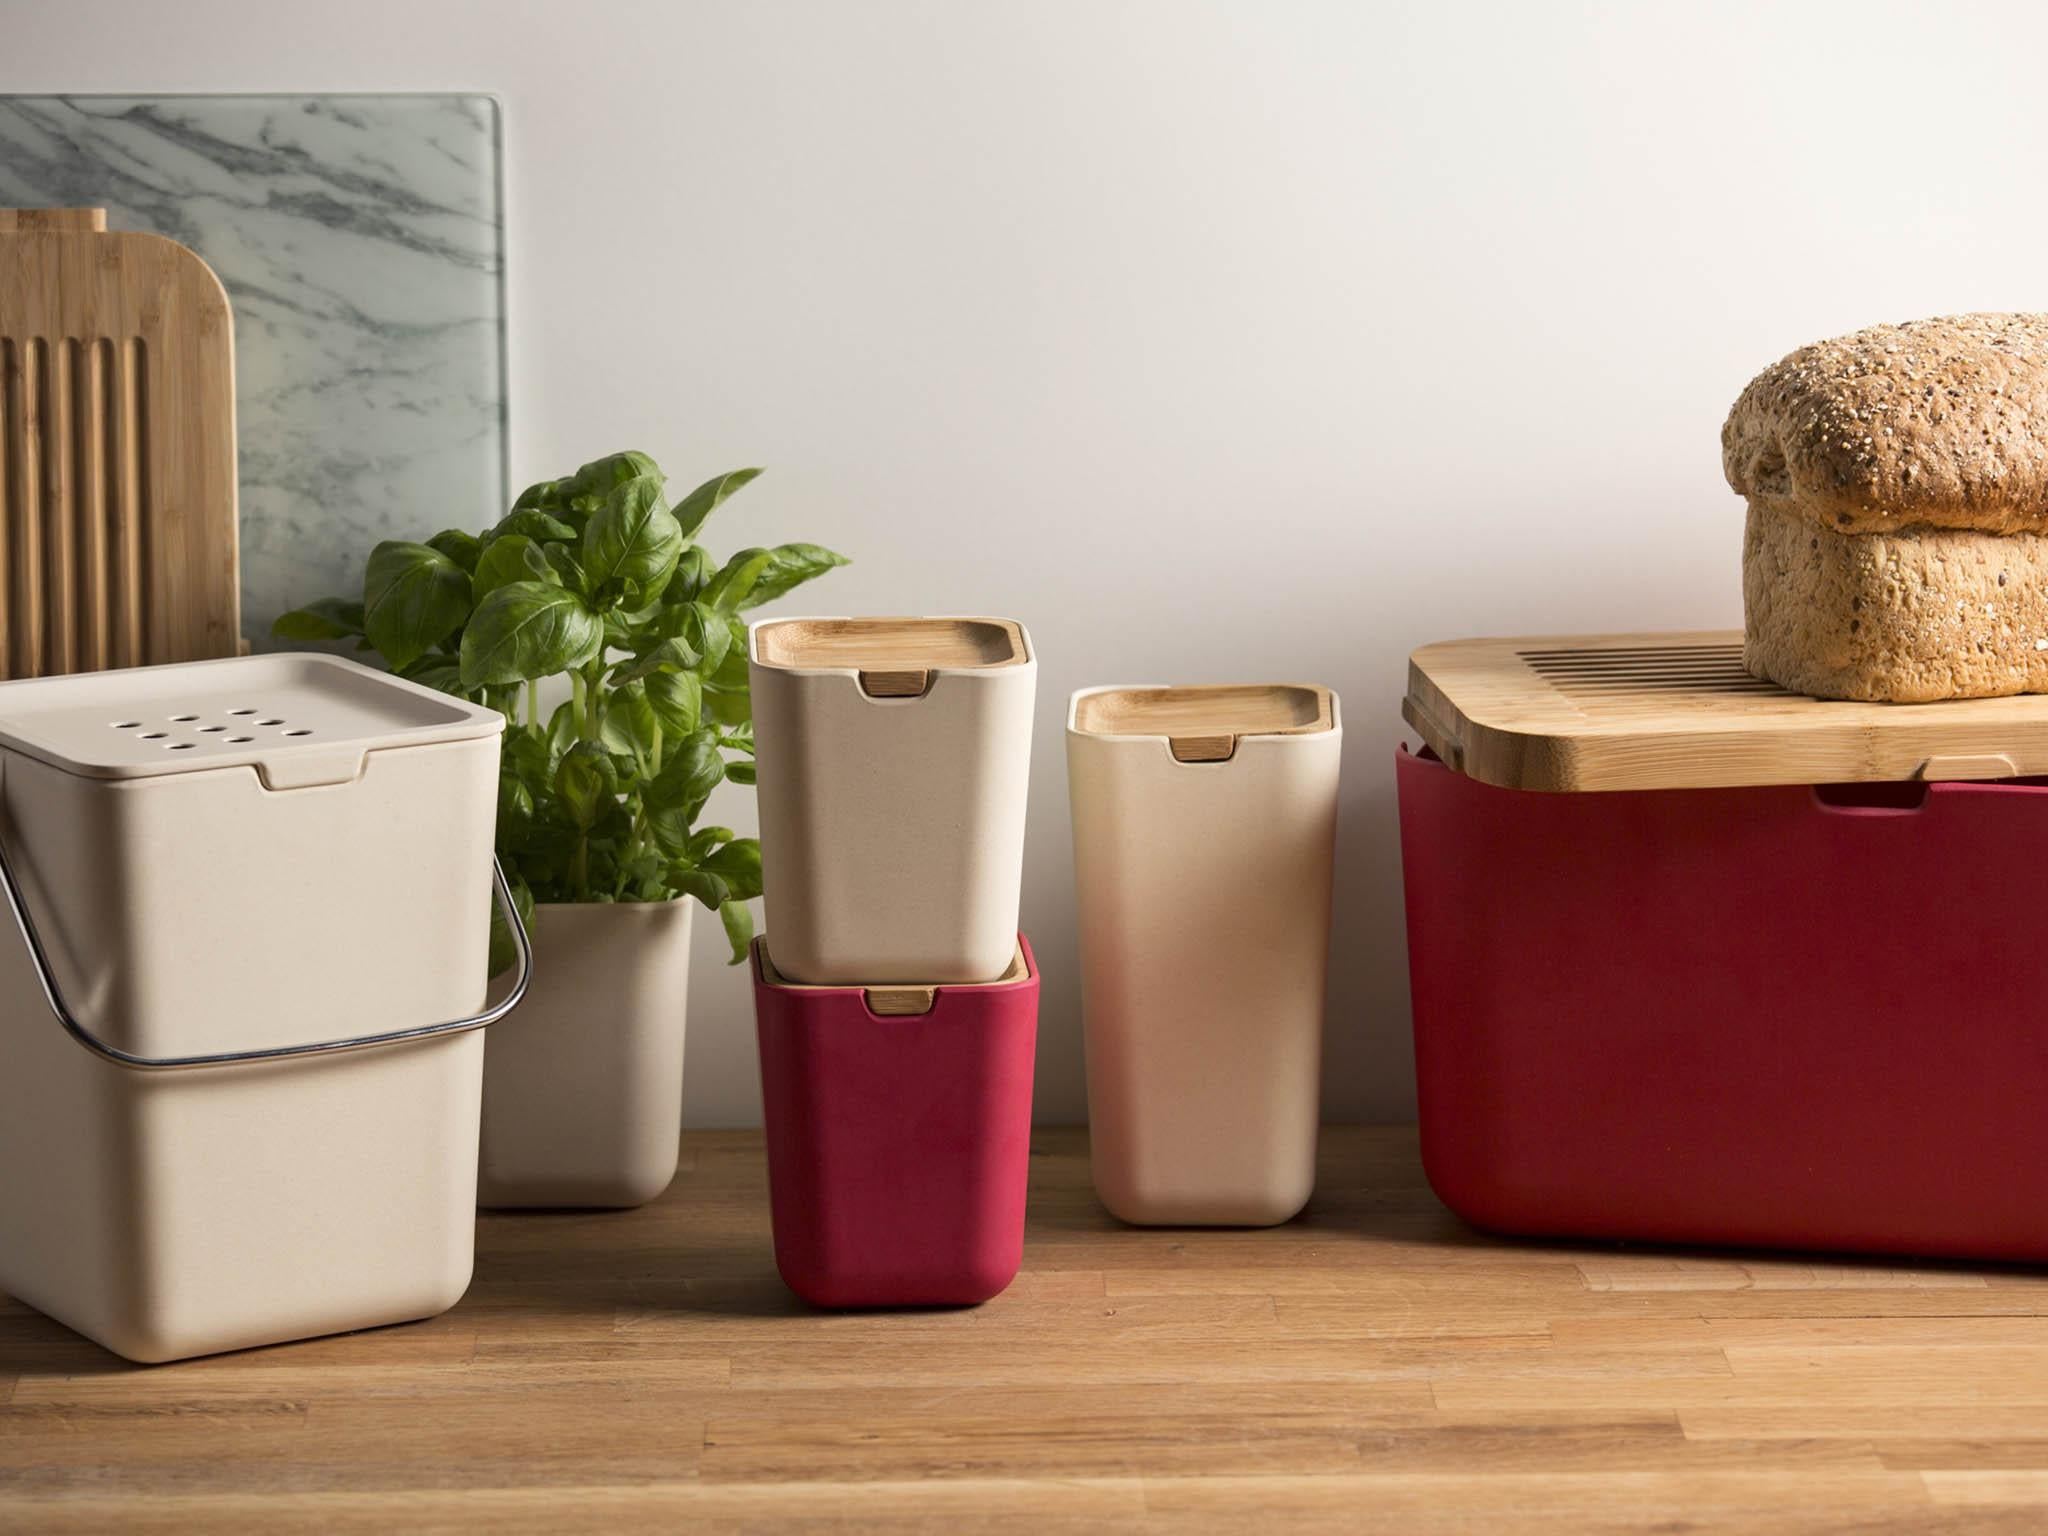 tubs target your tub walmart home plastic shoe small box storage sterilite distinctive innovative solution containers and for plasti in lots big garbage boxes